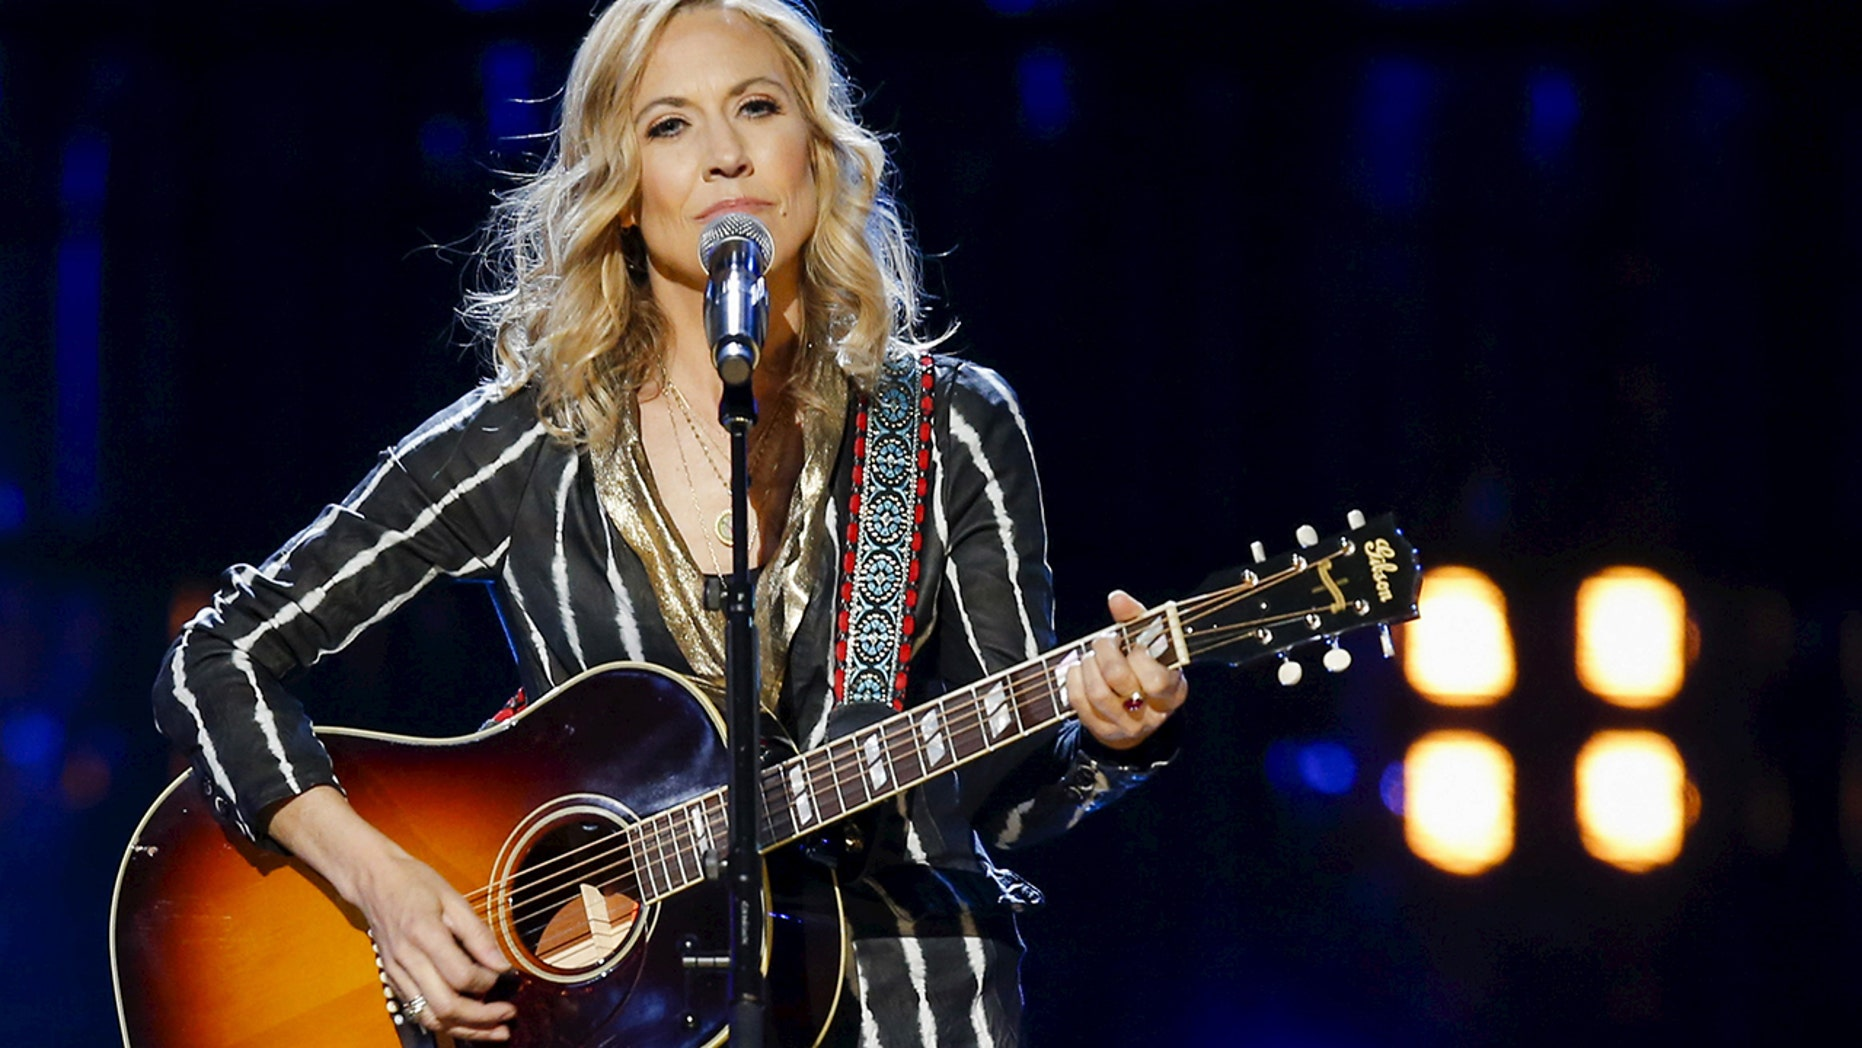 Singer Sheryl Crow performs onstage during the 31st annual Rock and Roll Hall of Fame Induction Ceremony at the Barclays Center in Brooklyn, New York April 8, 2016.